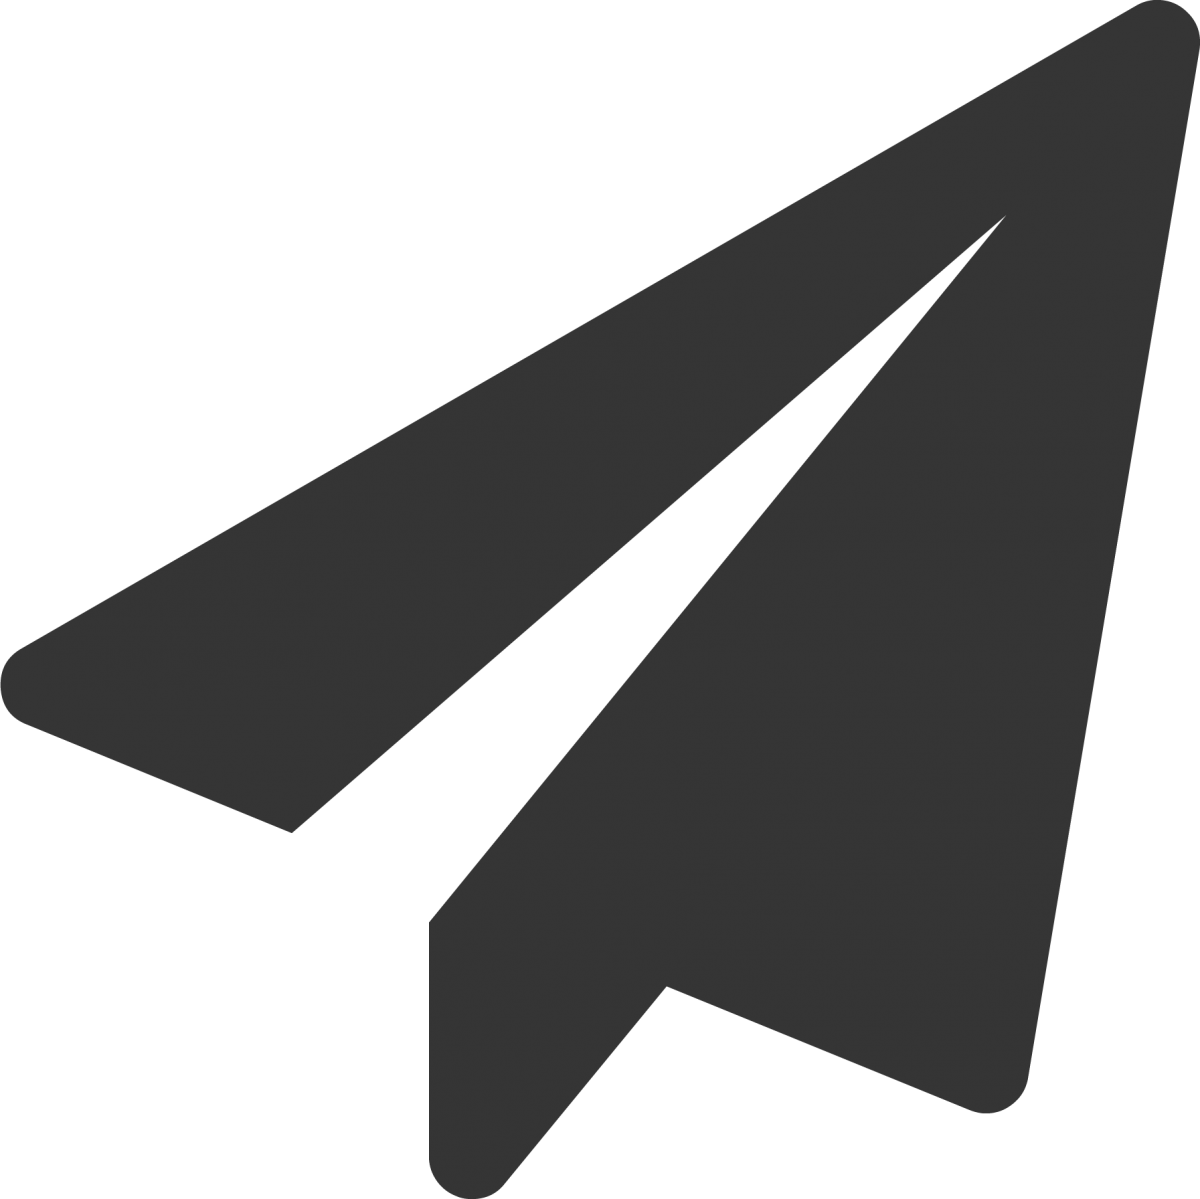 Paper Airplane Icon Link for Experiments